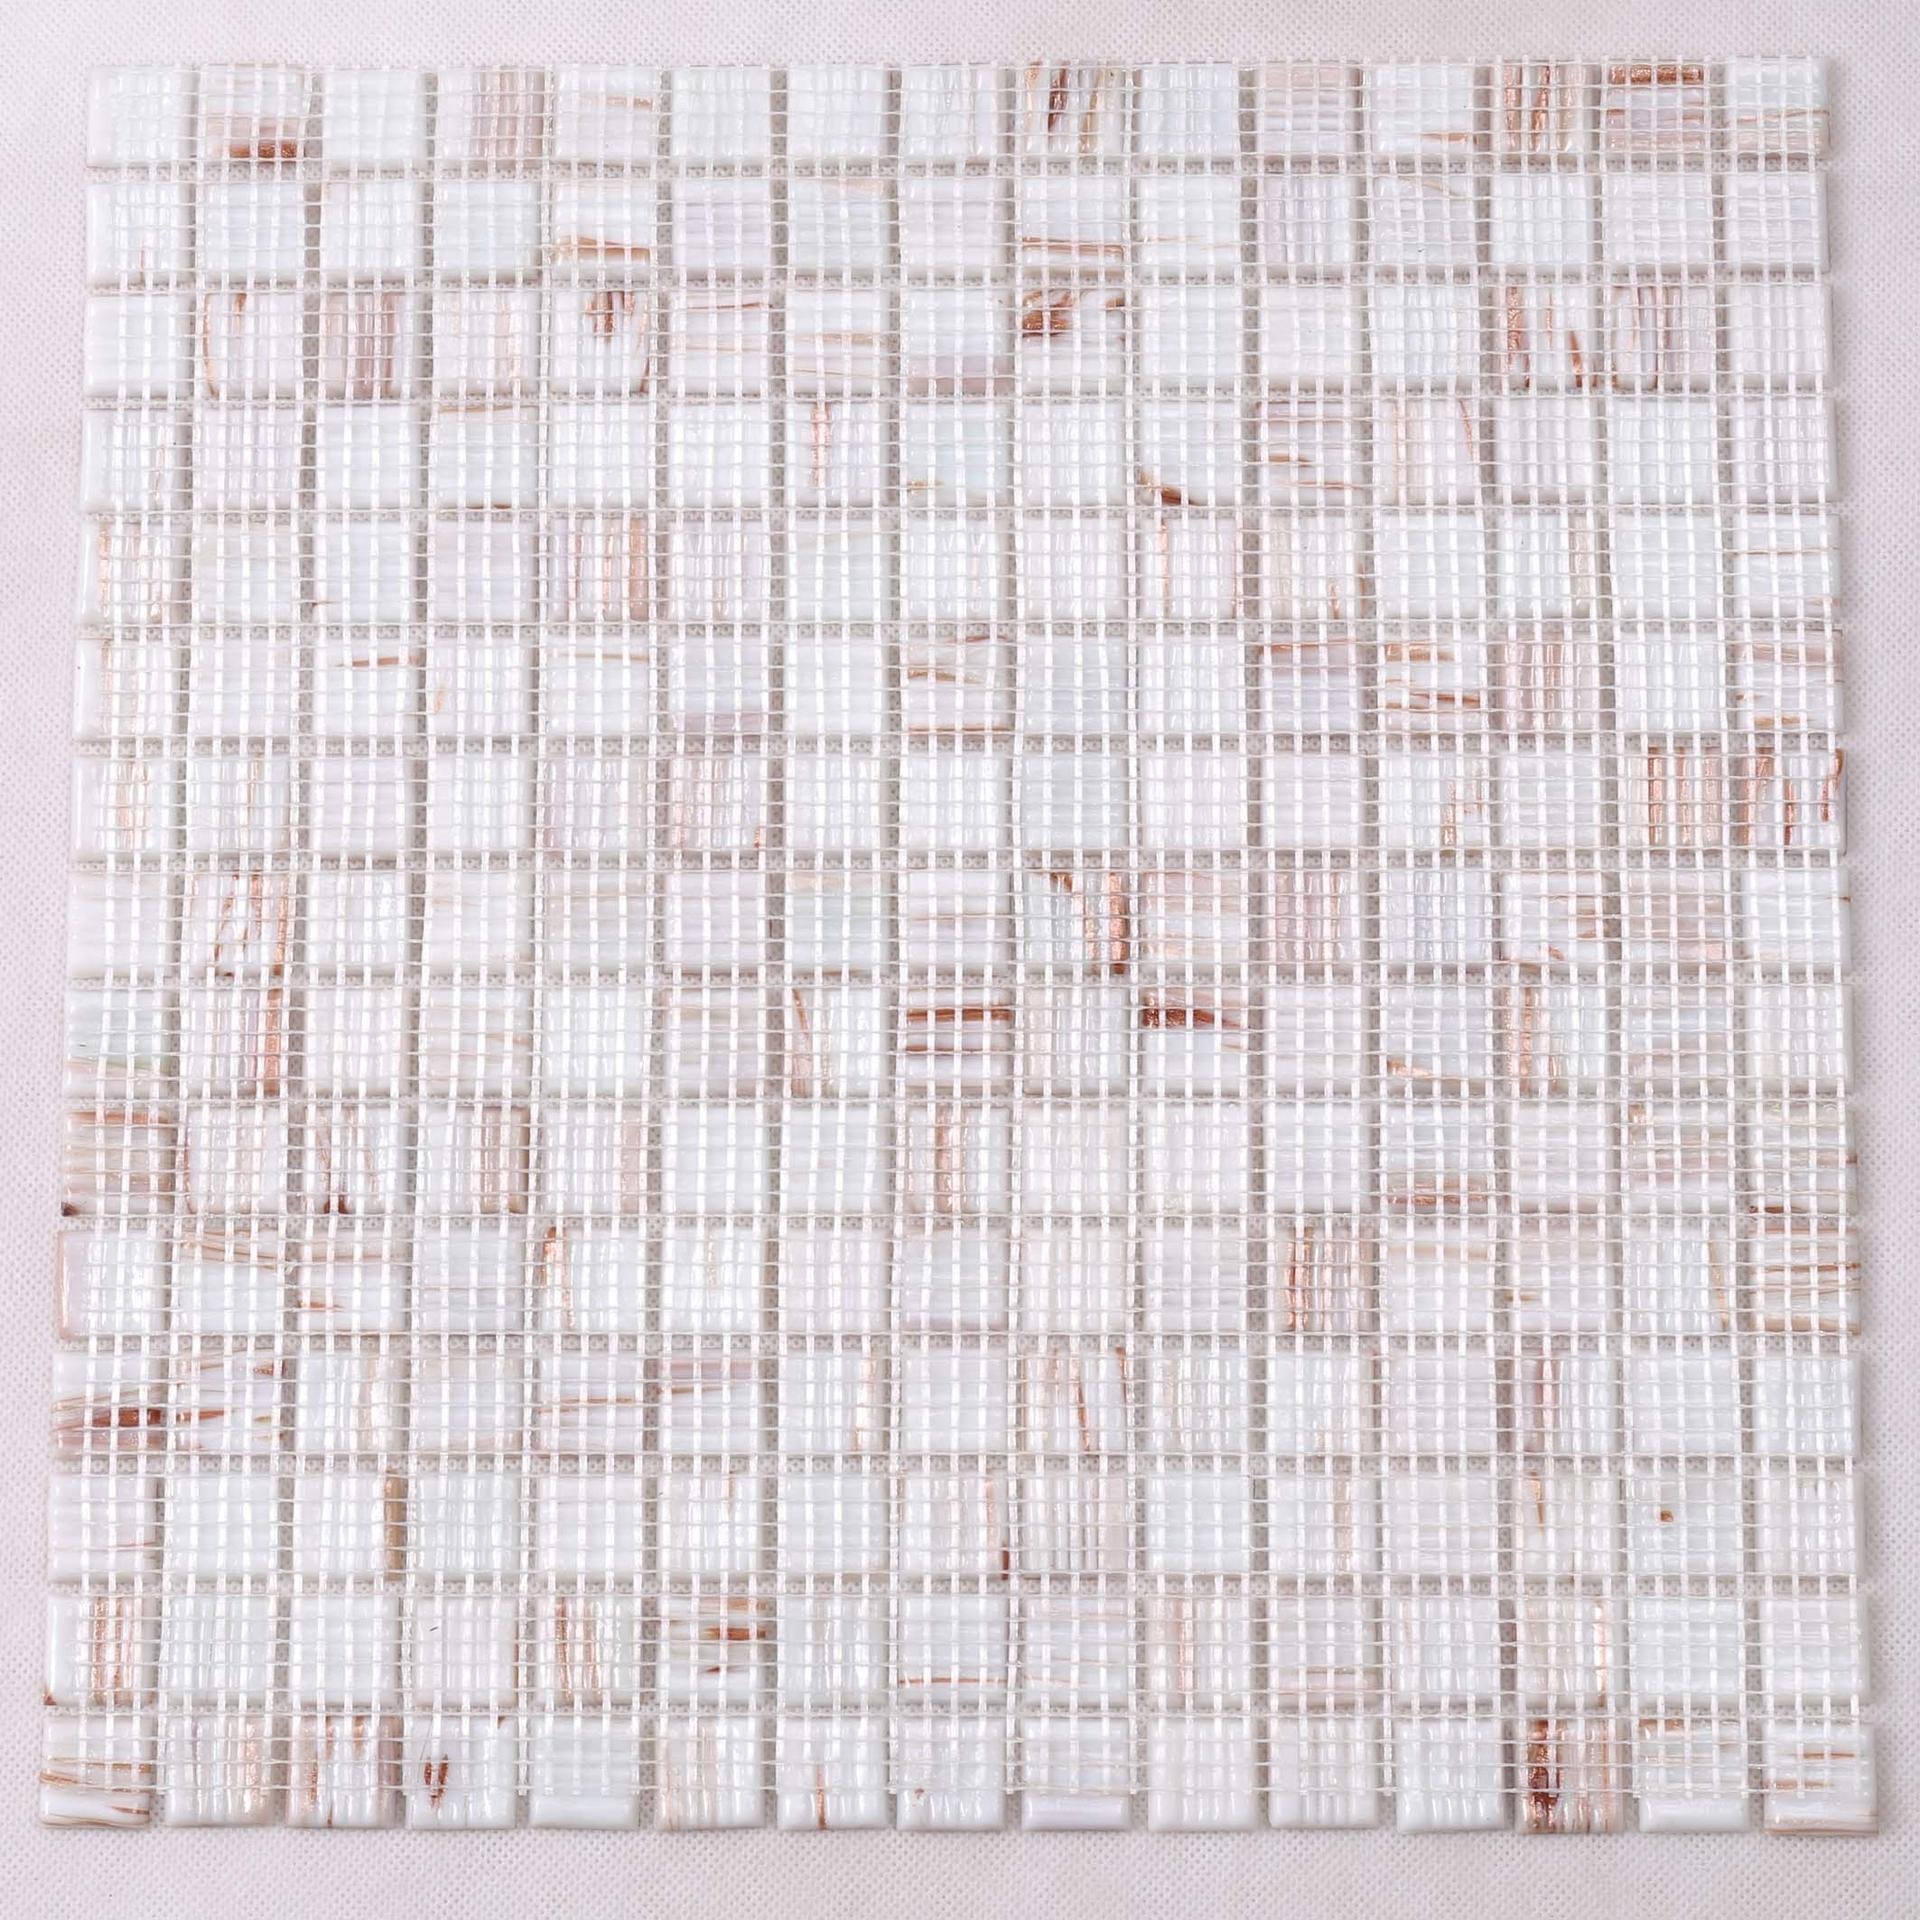 ceramic mosaic tile manufacturers deck company for swimming pool